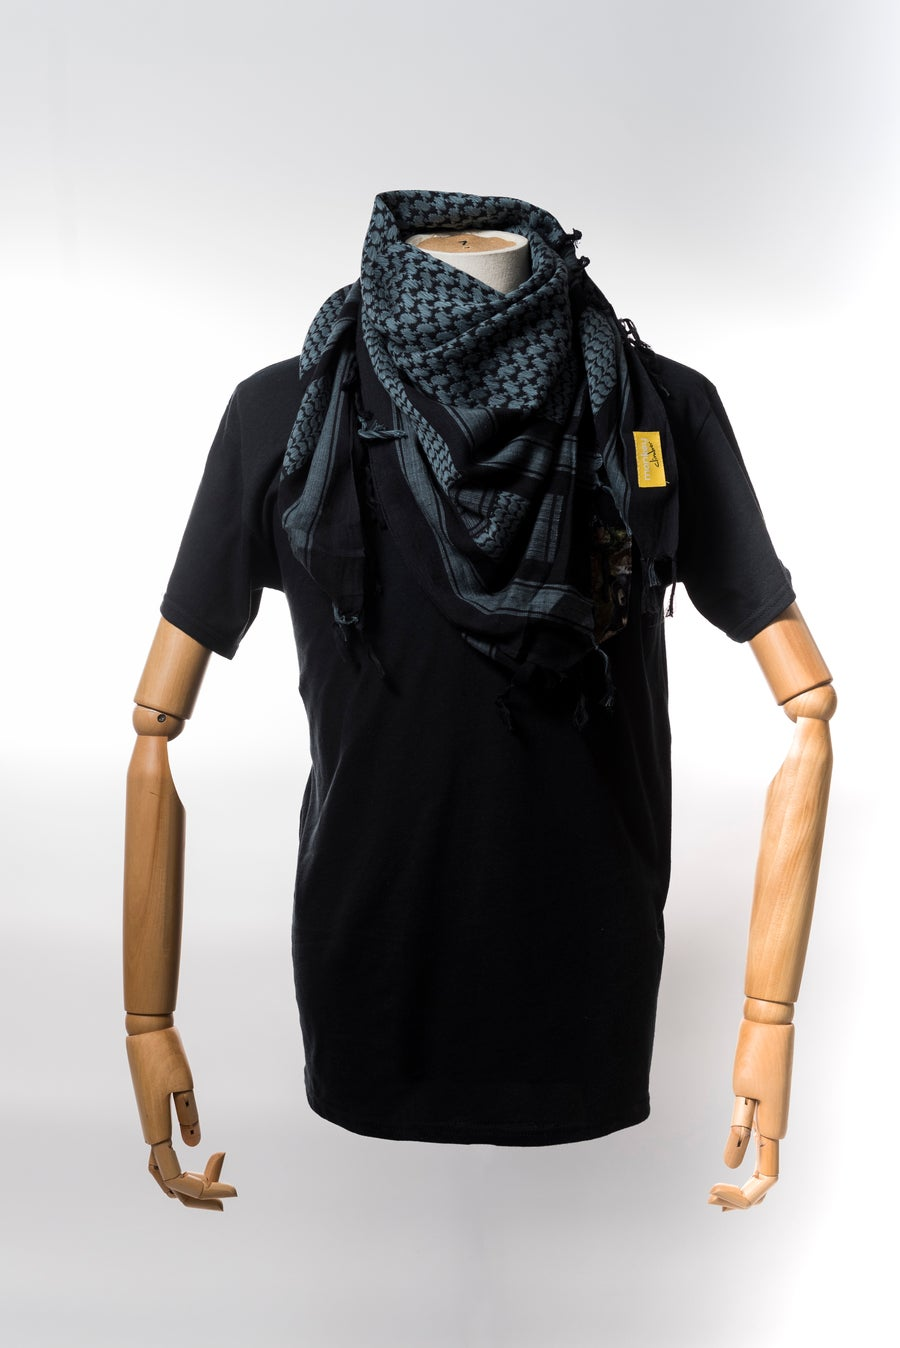 Image of Monkey Climber Shemagh Scarf I Black & Blue